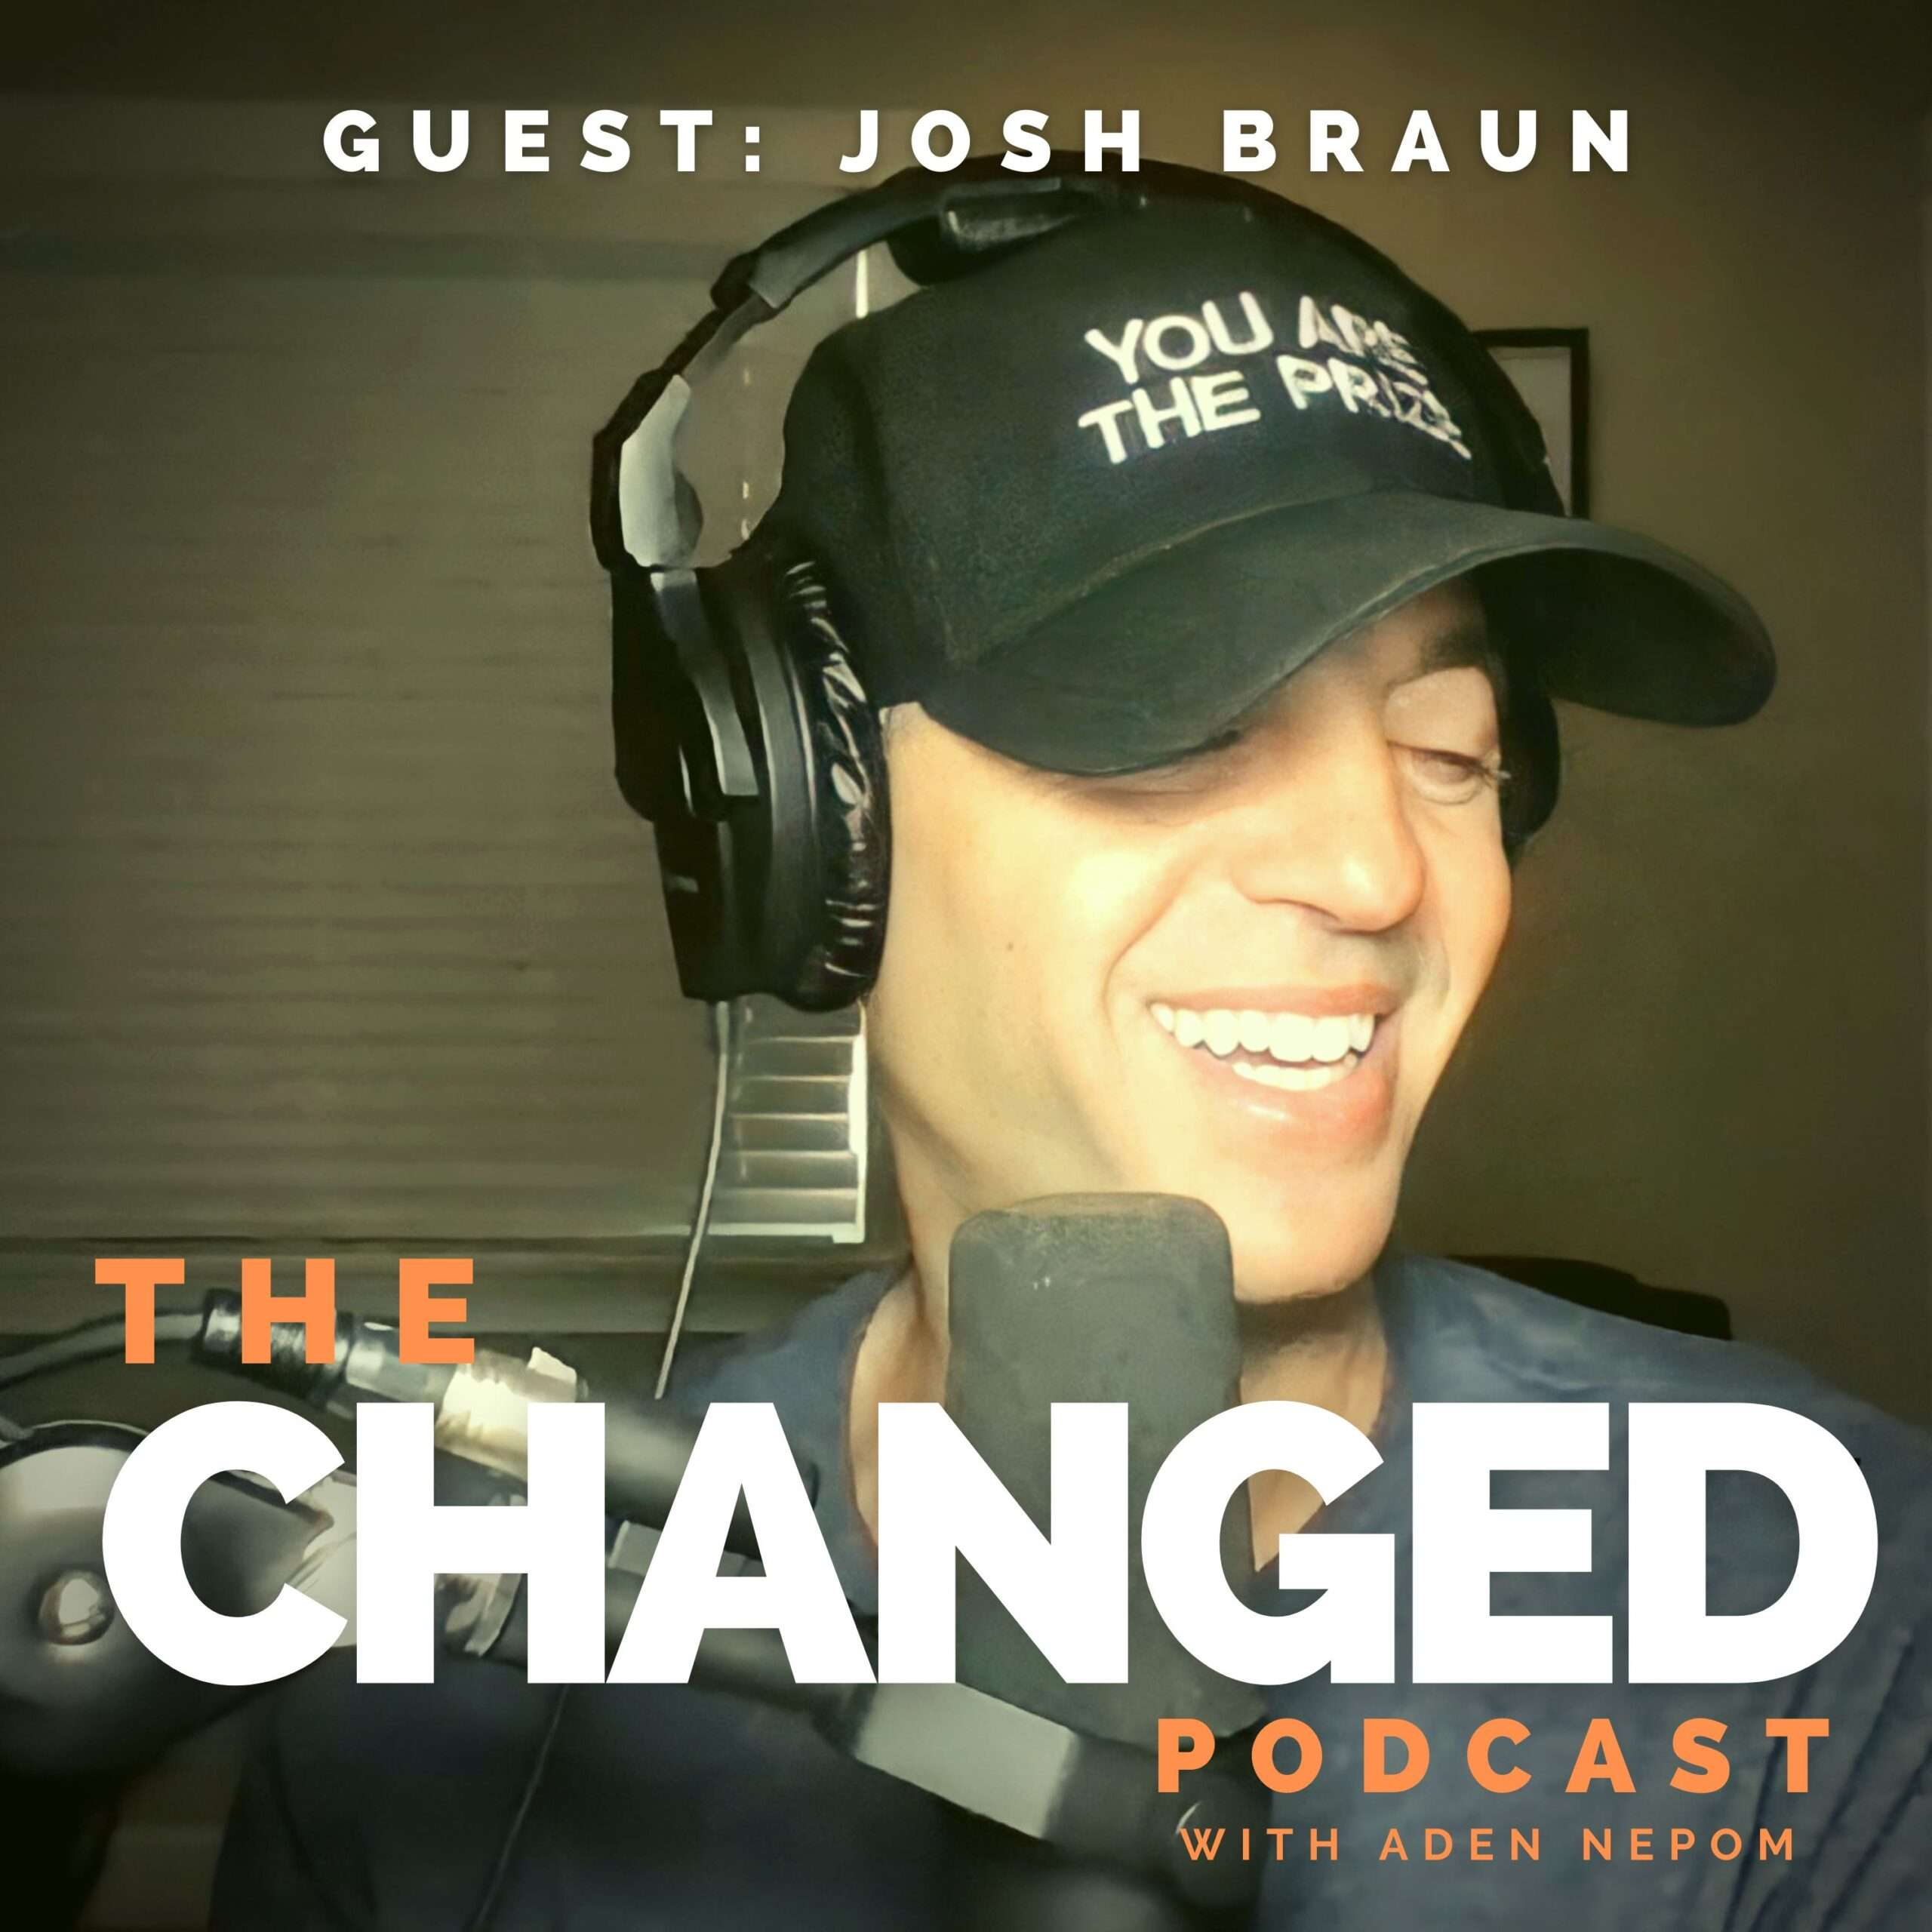 Josh Braun on why you should stop trying to change minds, and start listening instead – Episode 47